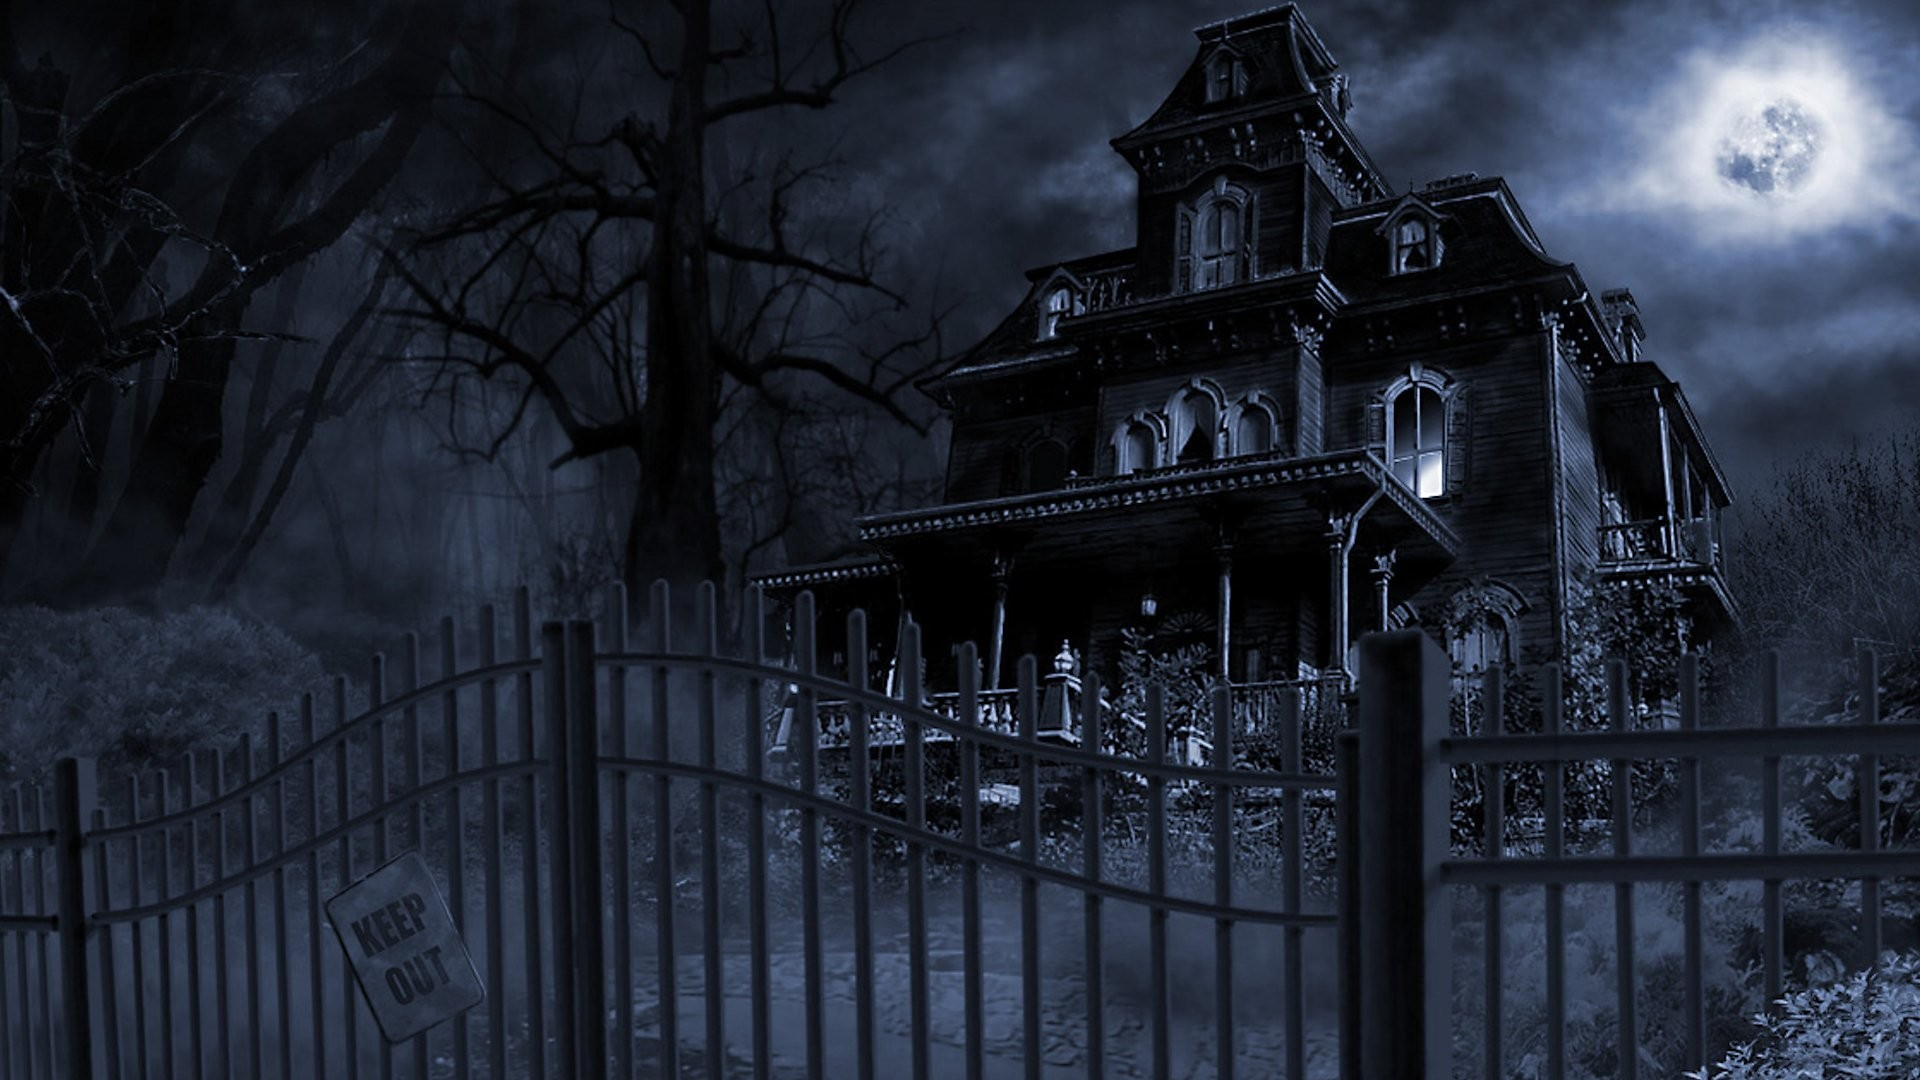 1920x1080 Spooky wallpapers | Dark Spooky Wallpaper/Background 1920 x 1080 - Id:  209828 -